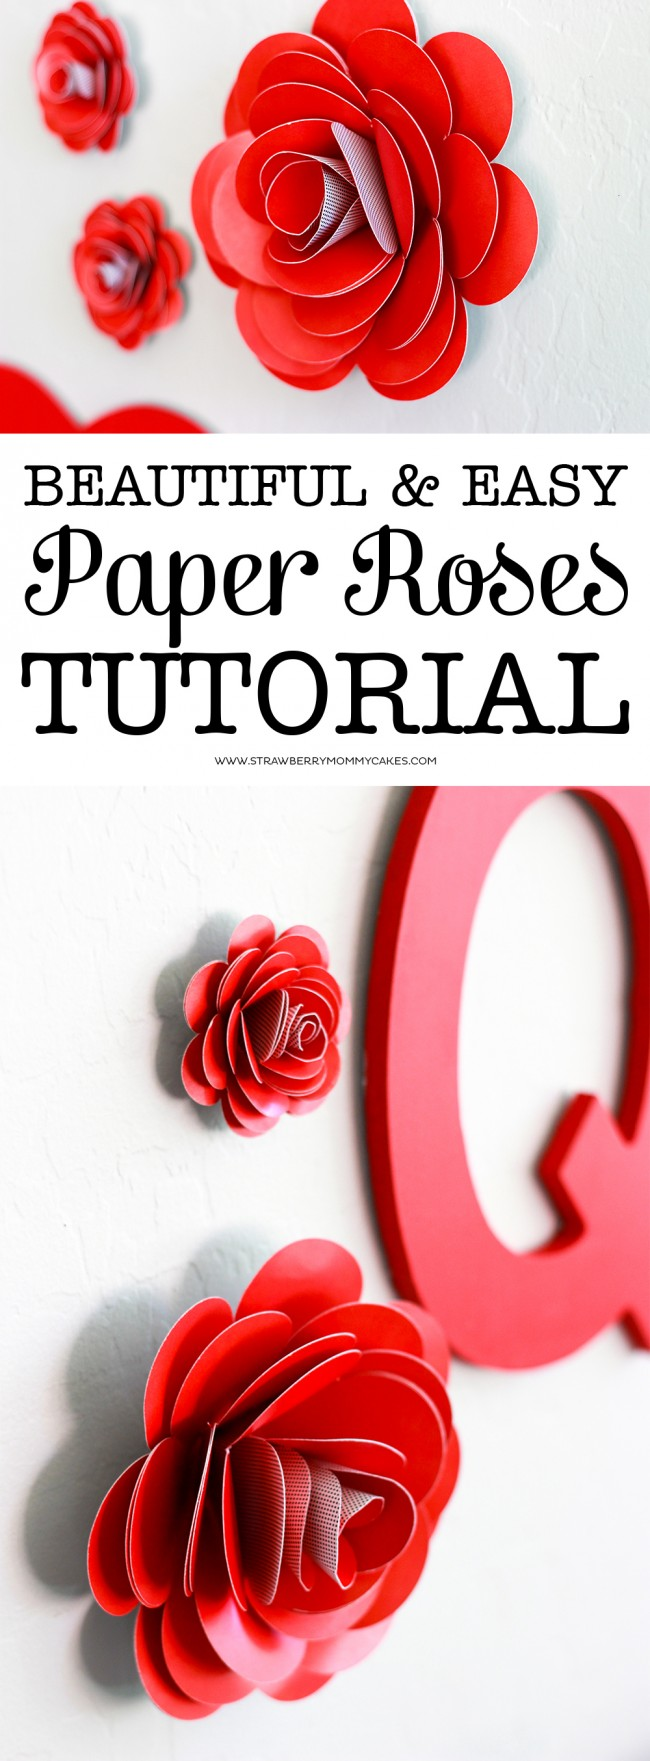 How to make a paper rose long pin collage